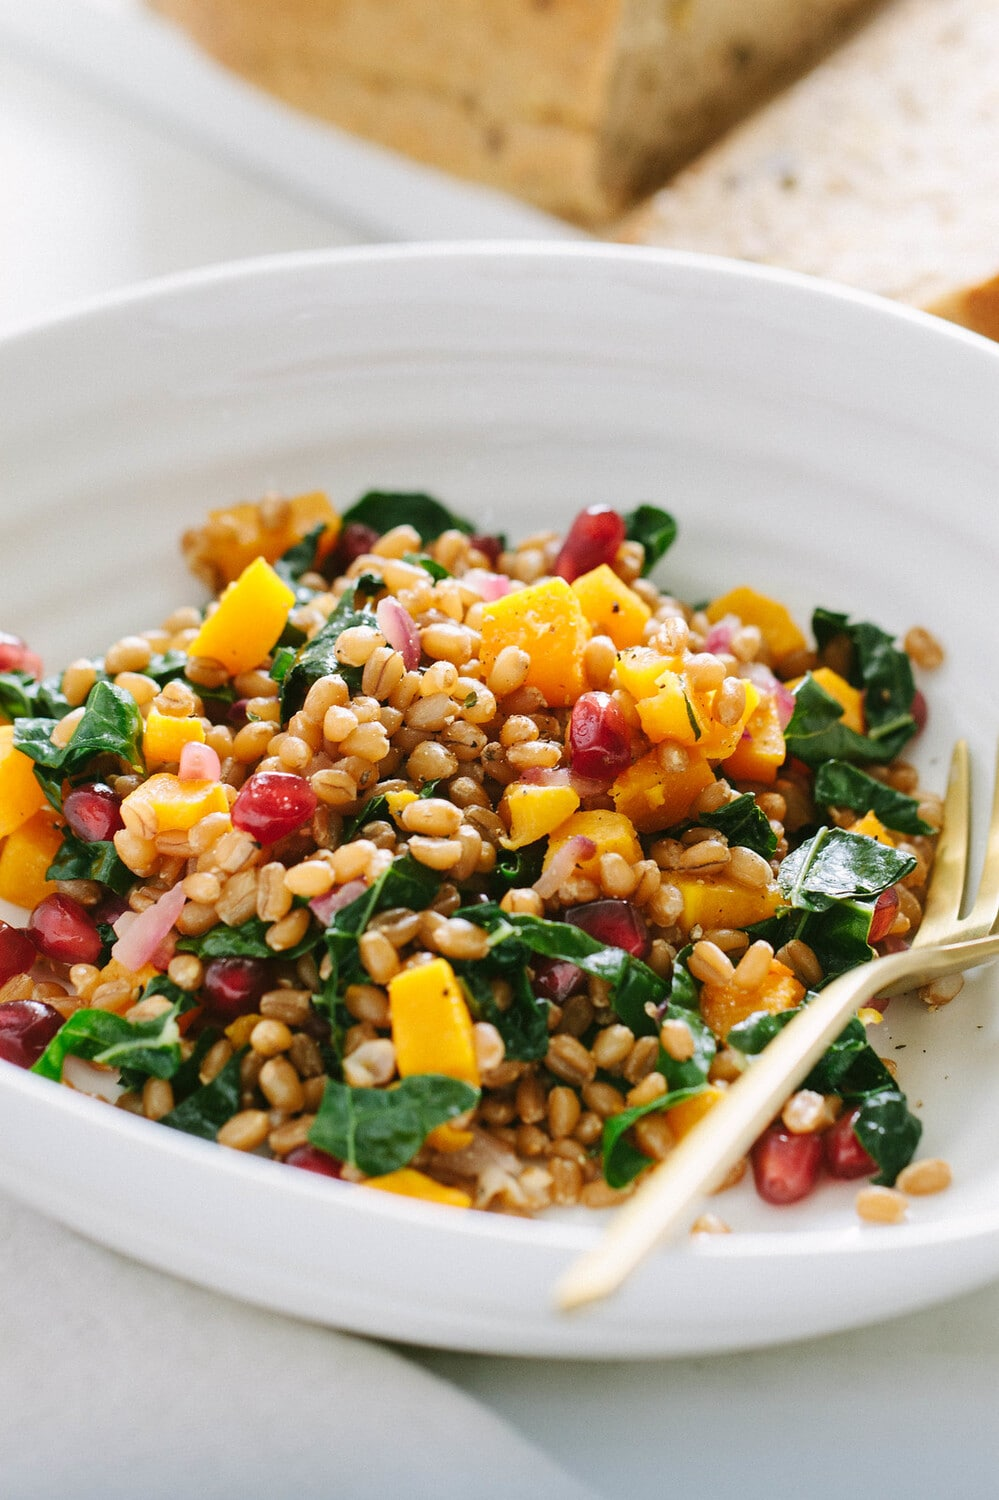 side angle view of a serving of autumn wheat berry and butternut squash salad in a white bowl with gold fork.